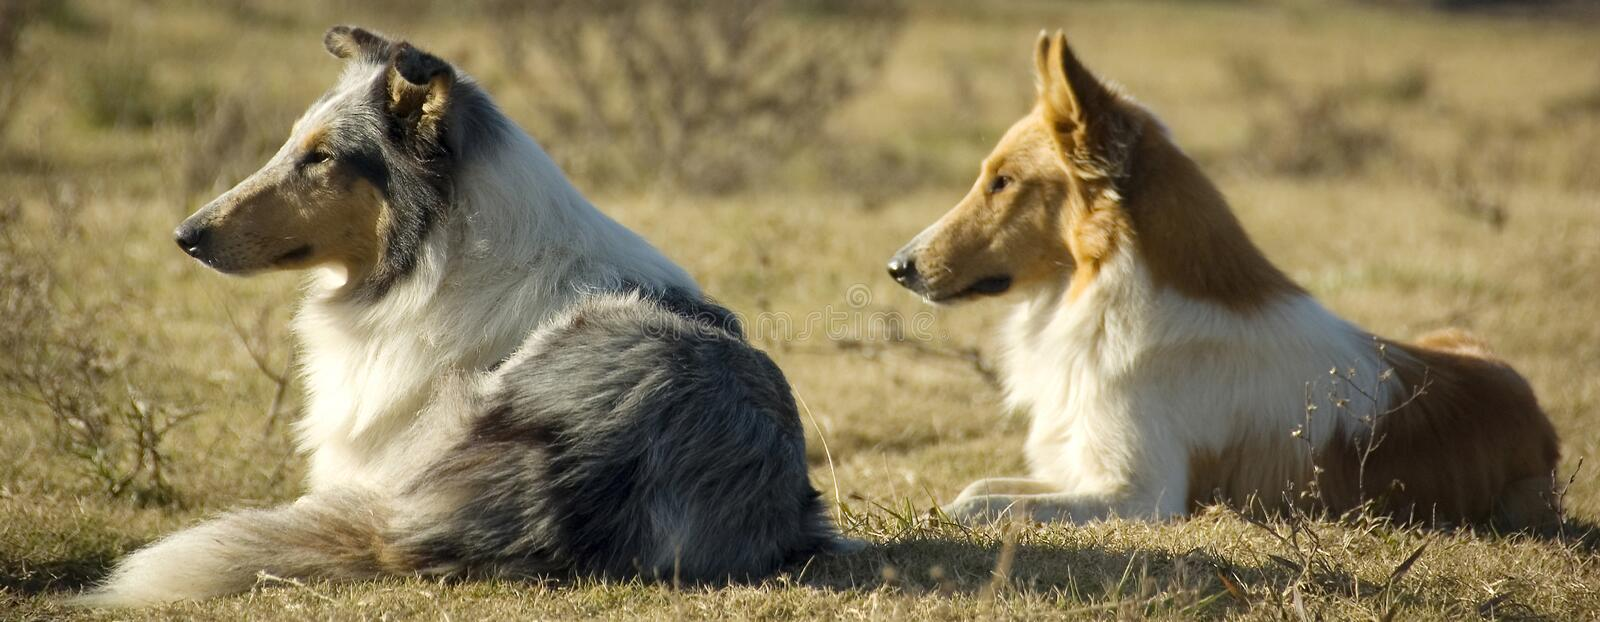 Download Farm Dogs stock image. Image of collie, looking, dogs - 5841631